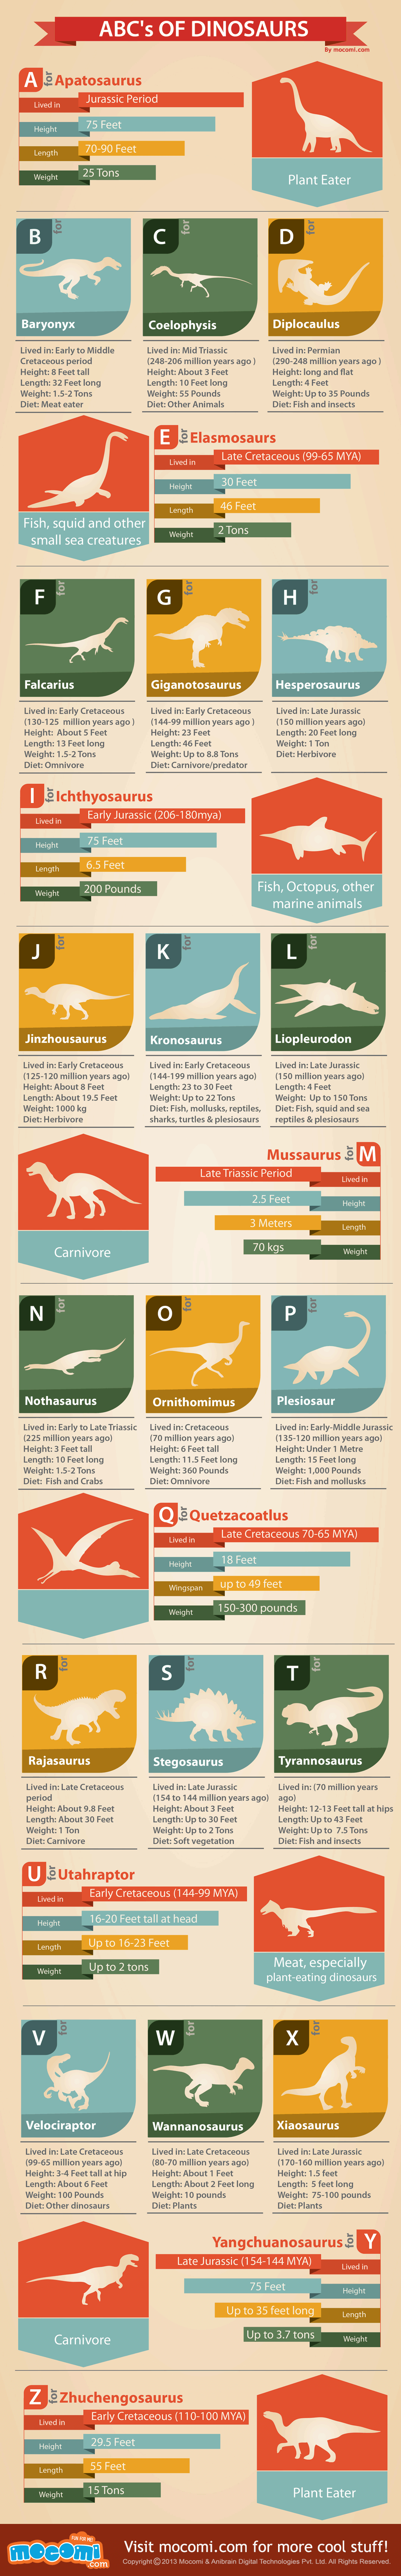 ABC's of Dinosaurs